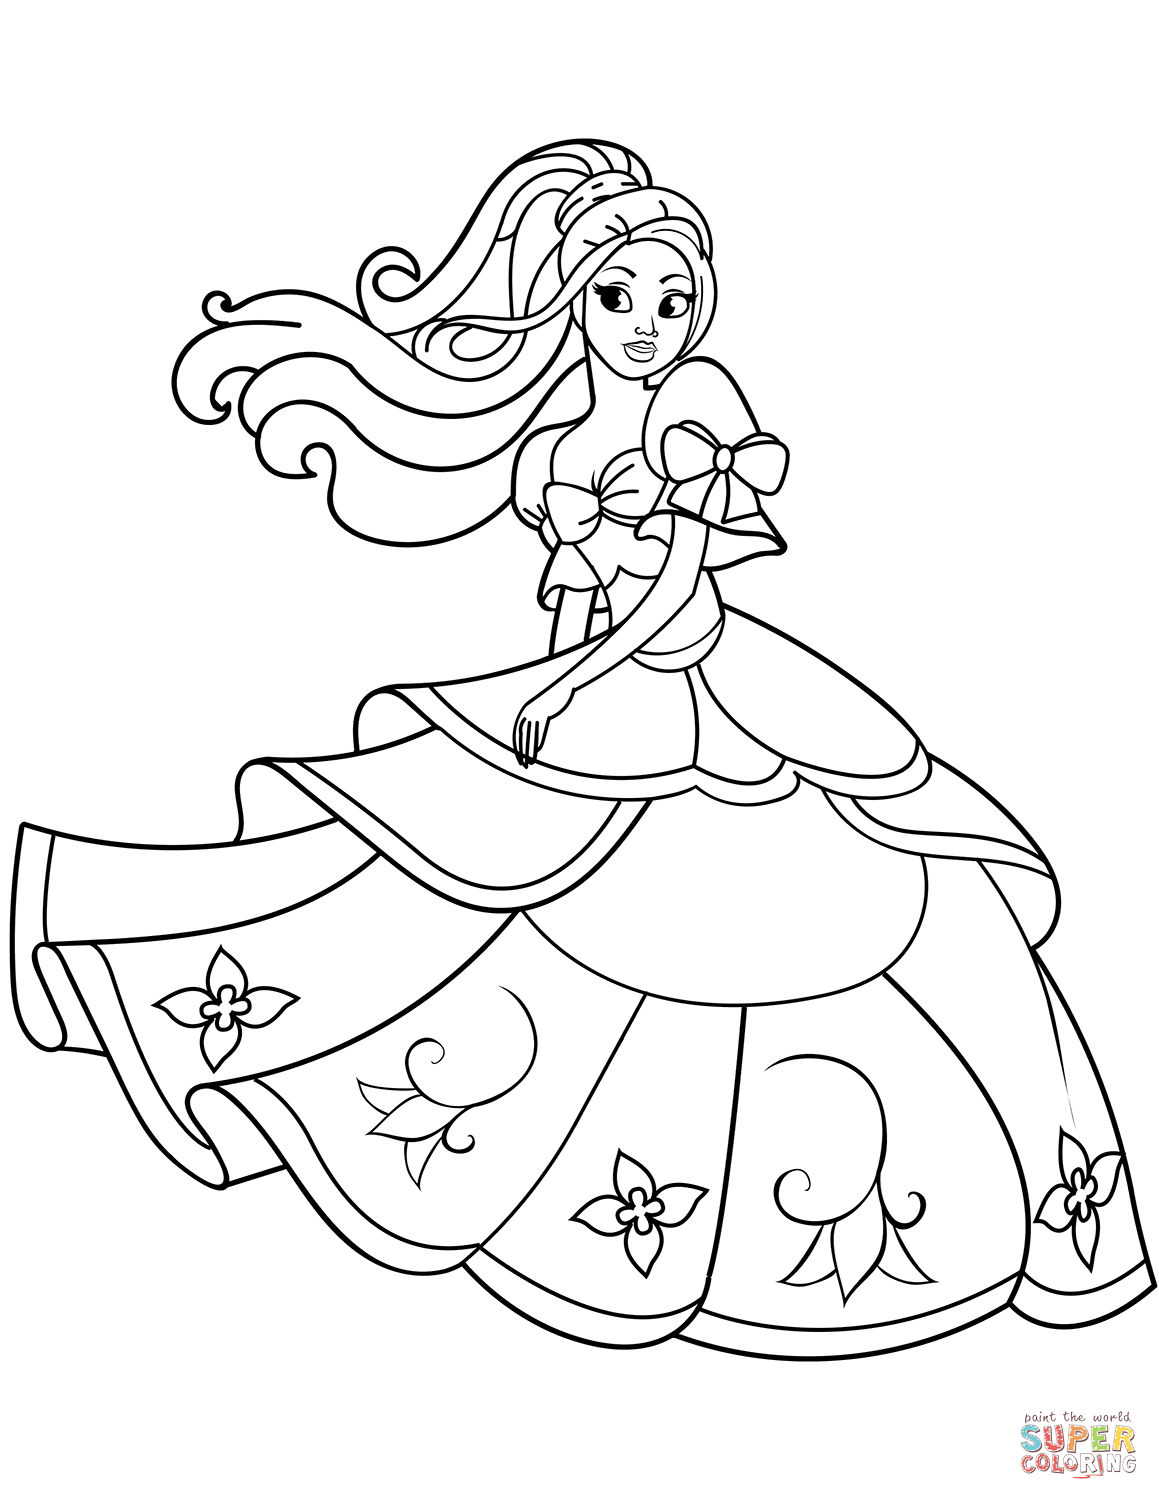 Best 10 Free Printable Princess Coloring Pages